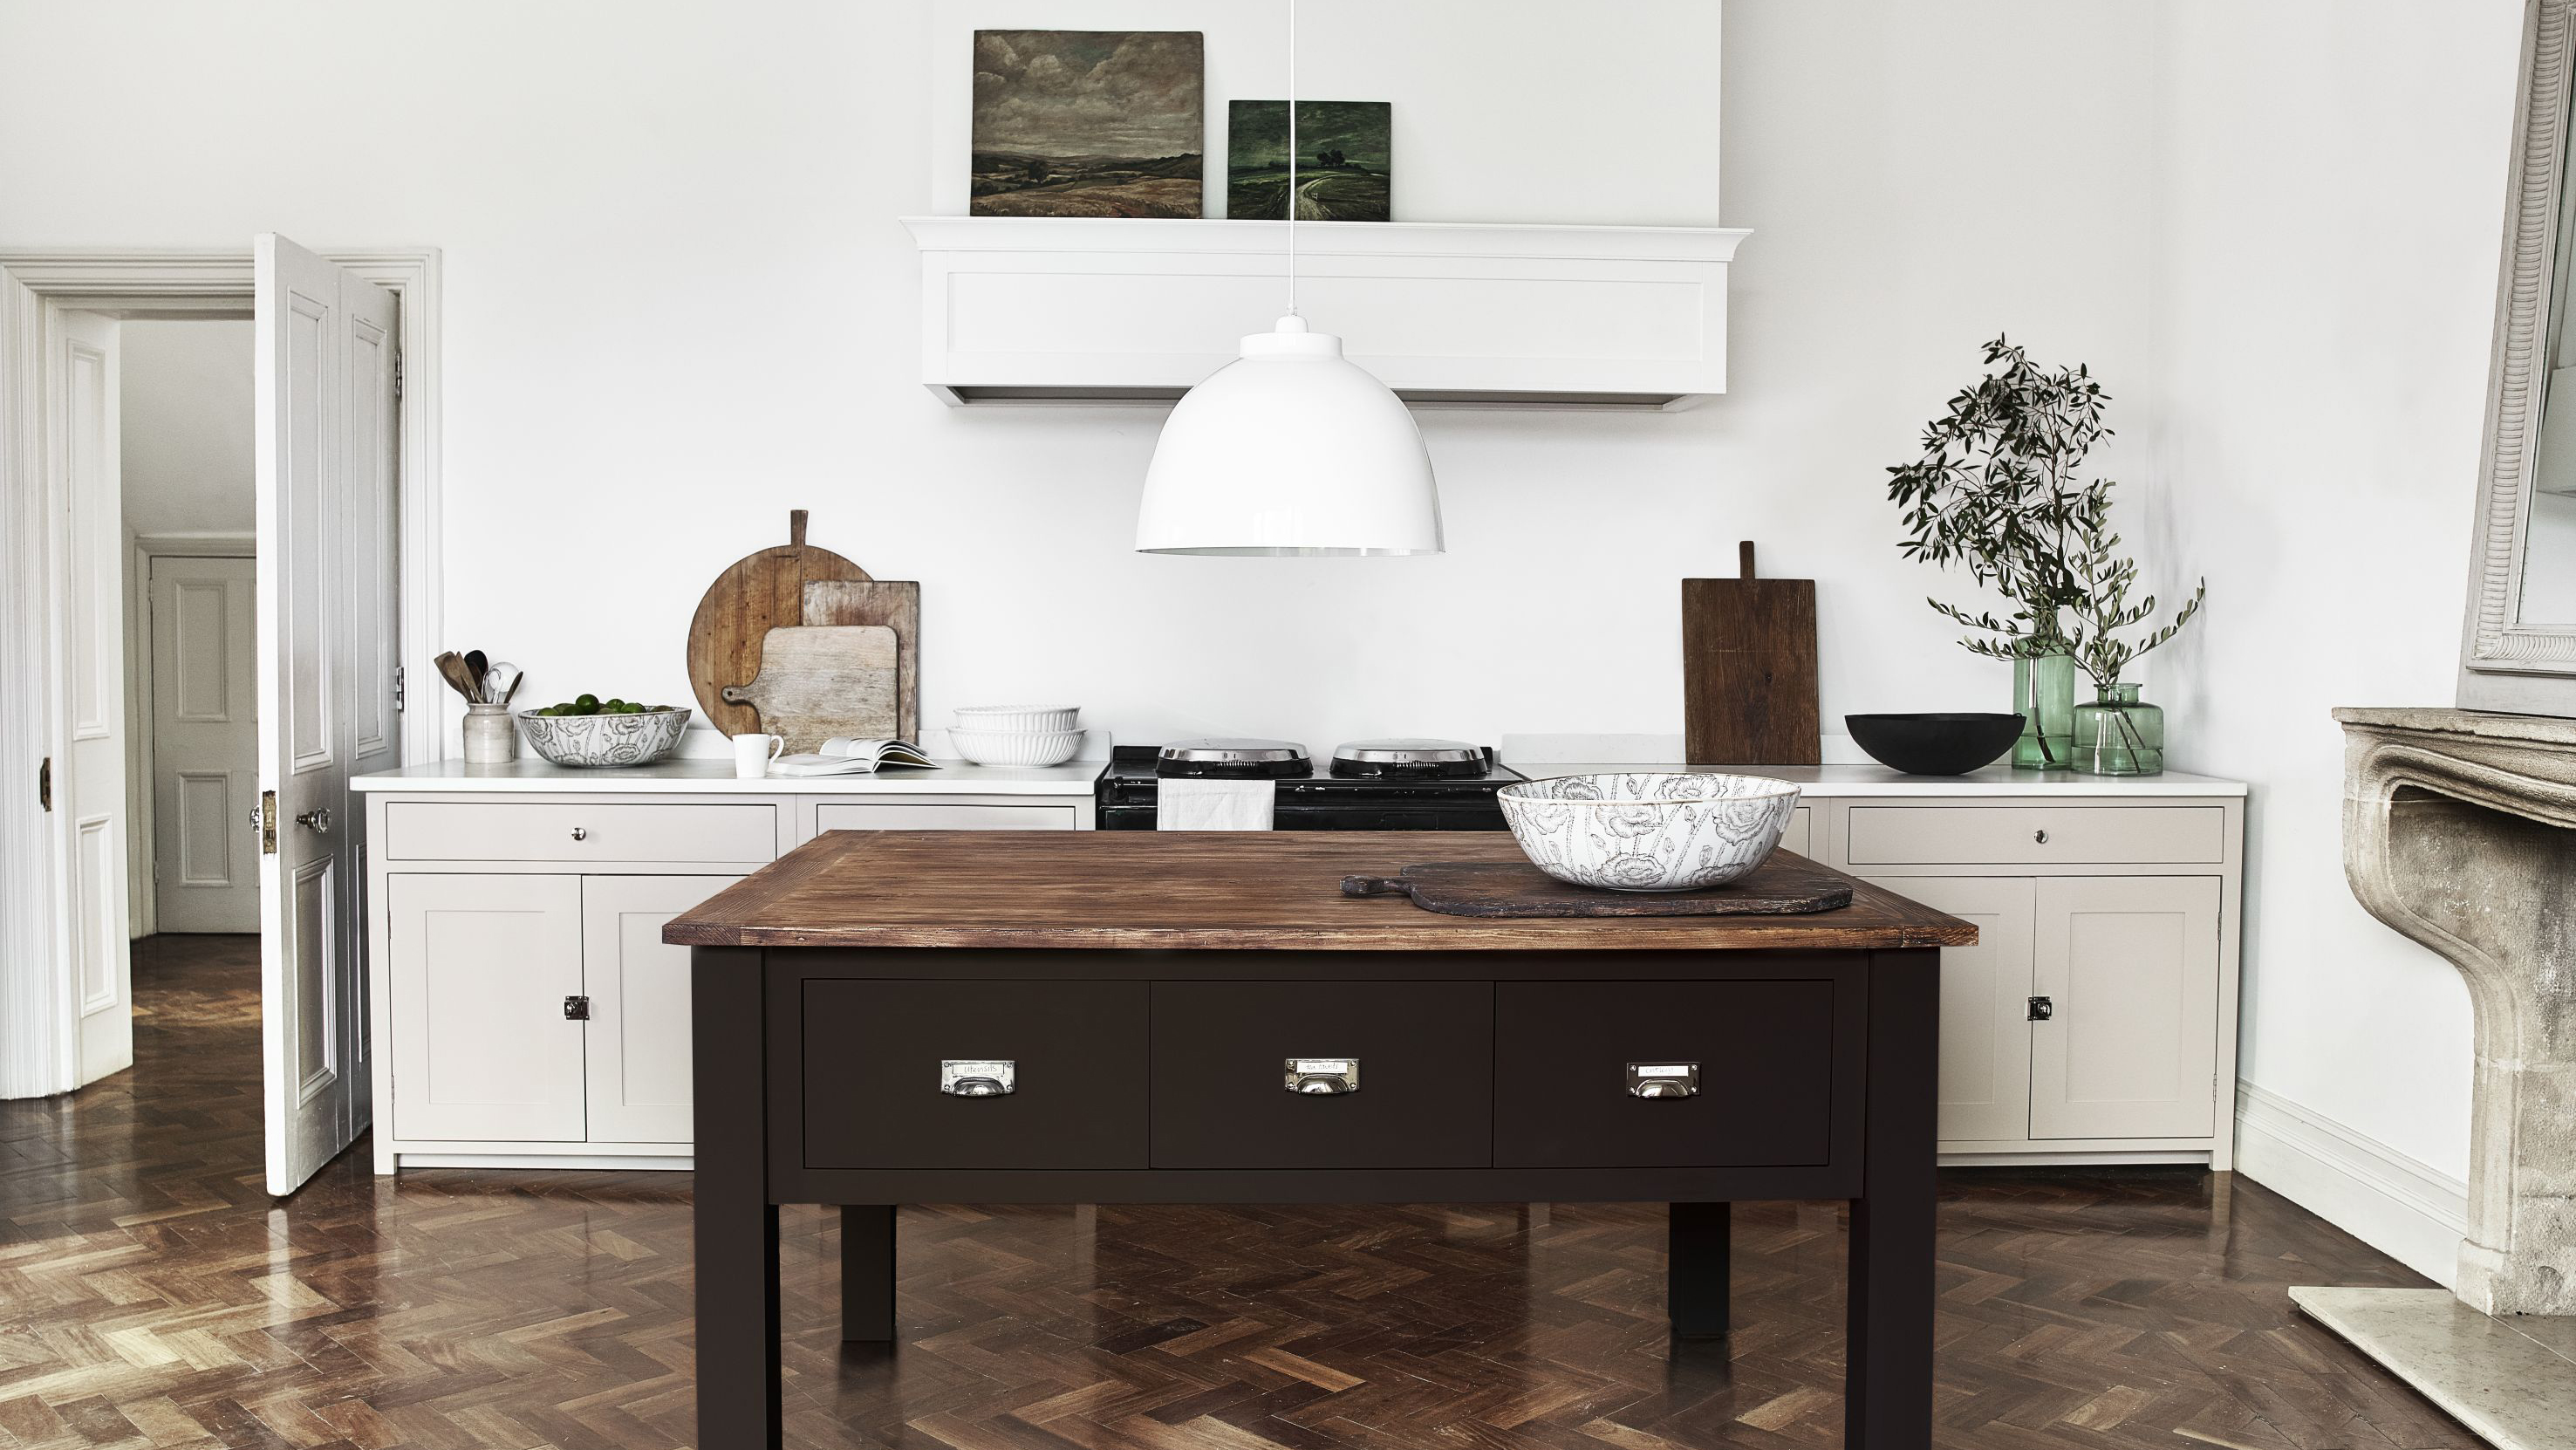 How To Design A Freestanding Kitchen Cabinets Islands And